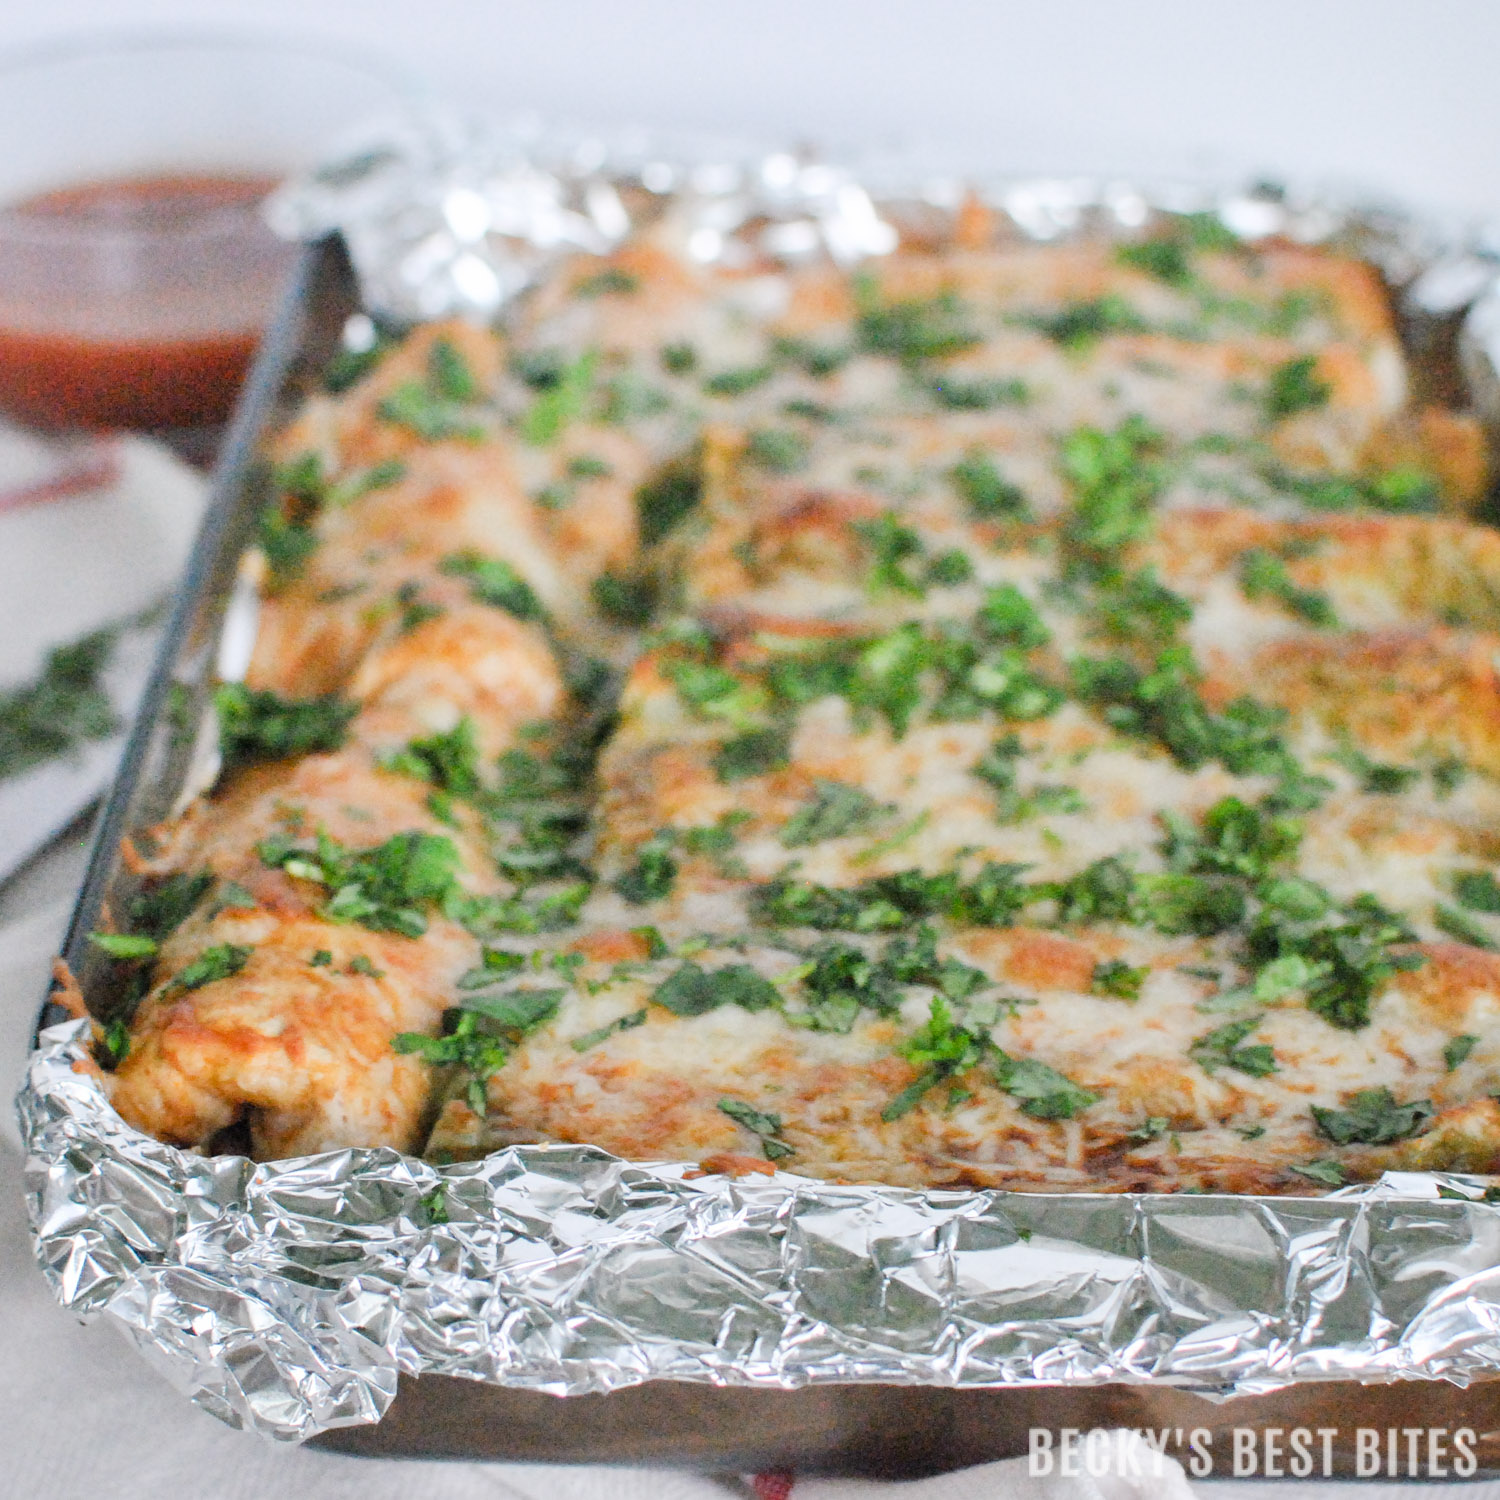 Veggie Packed Easy Chicken Enchiladas are perfect for family weeknight dinner & ready in 30 minutes. Be a kitchen pro and make cleanup a breeze by lining the pan with Glad™ Aluminum Foil before baking.   beckysbestbites.com